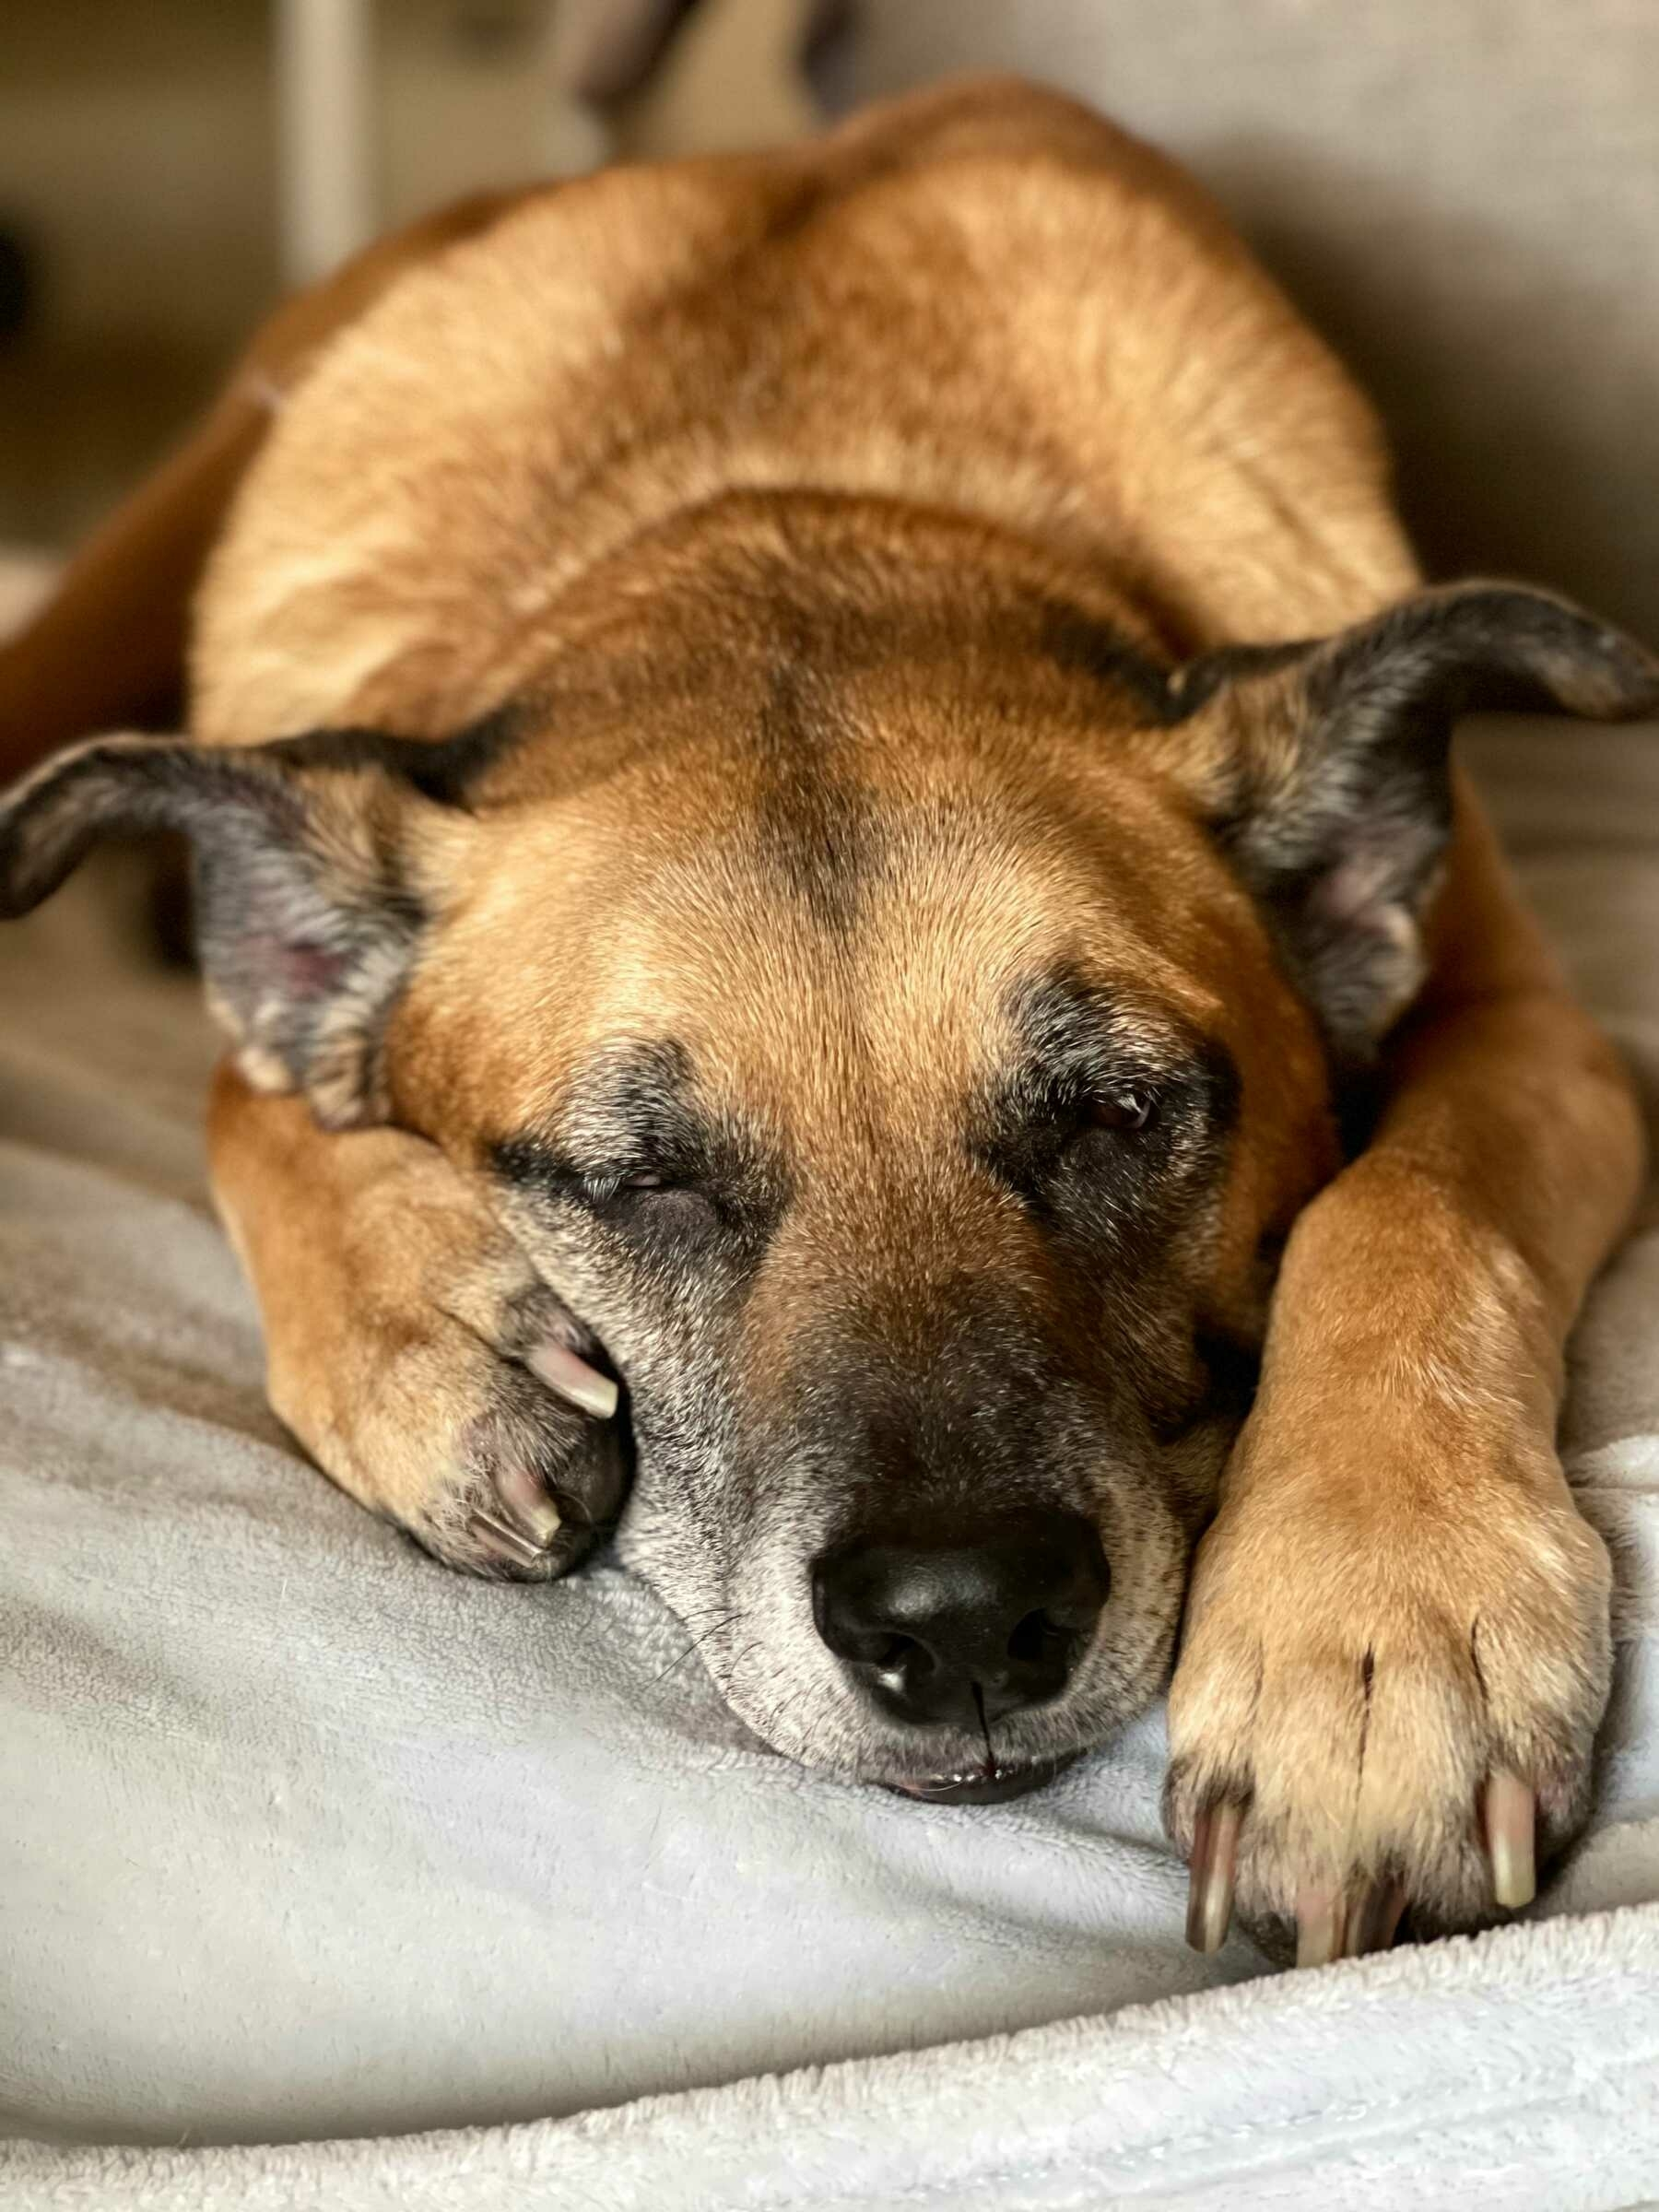 A large dog sleeping on a couch.